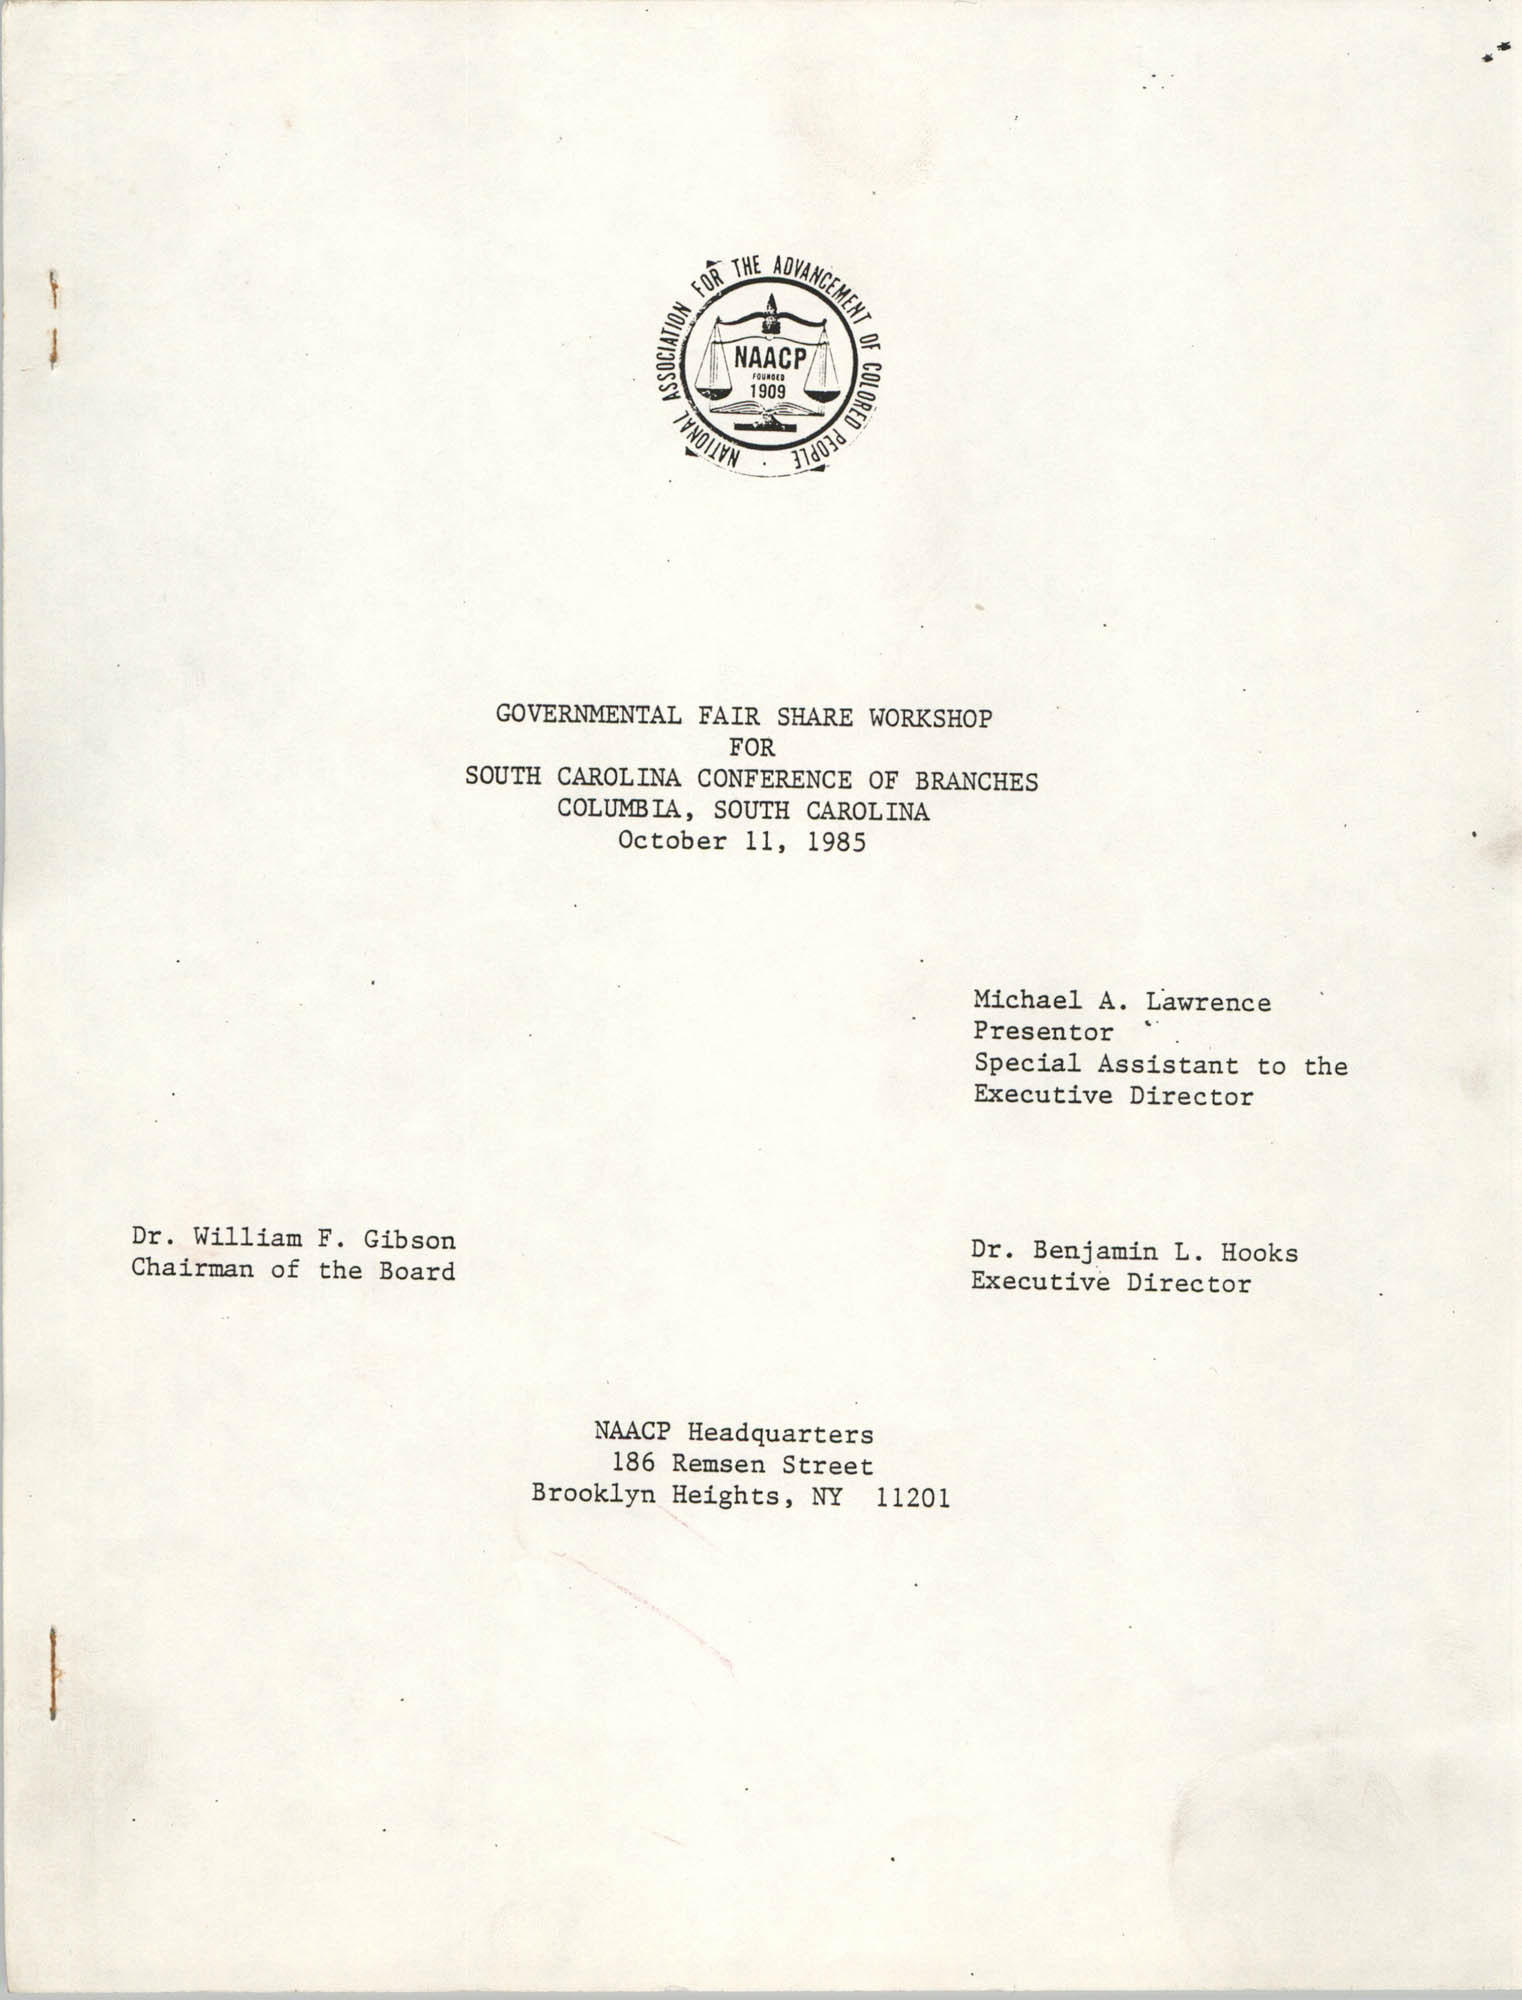 Governmental Fair Share Workshop for South Carolina Conference of Branches, October 11, 1985, Cover